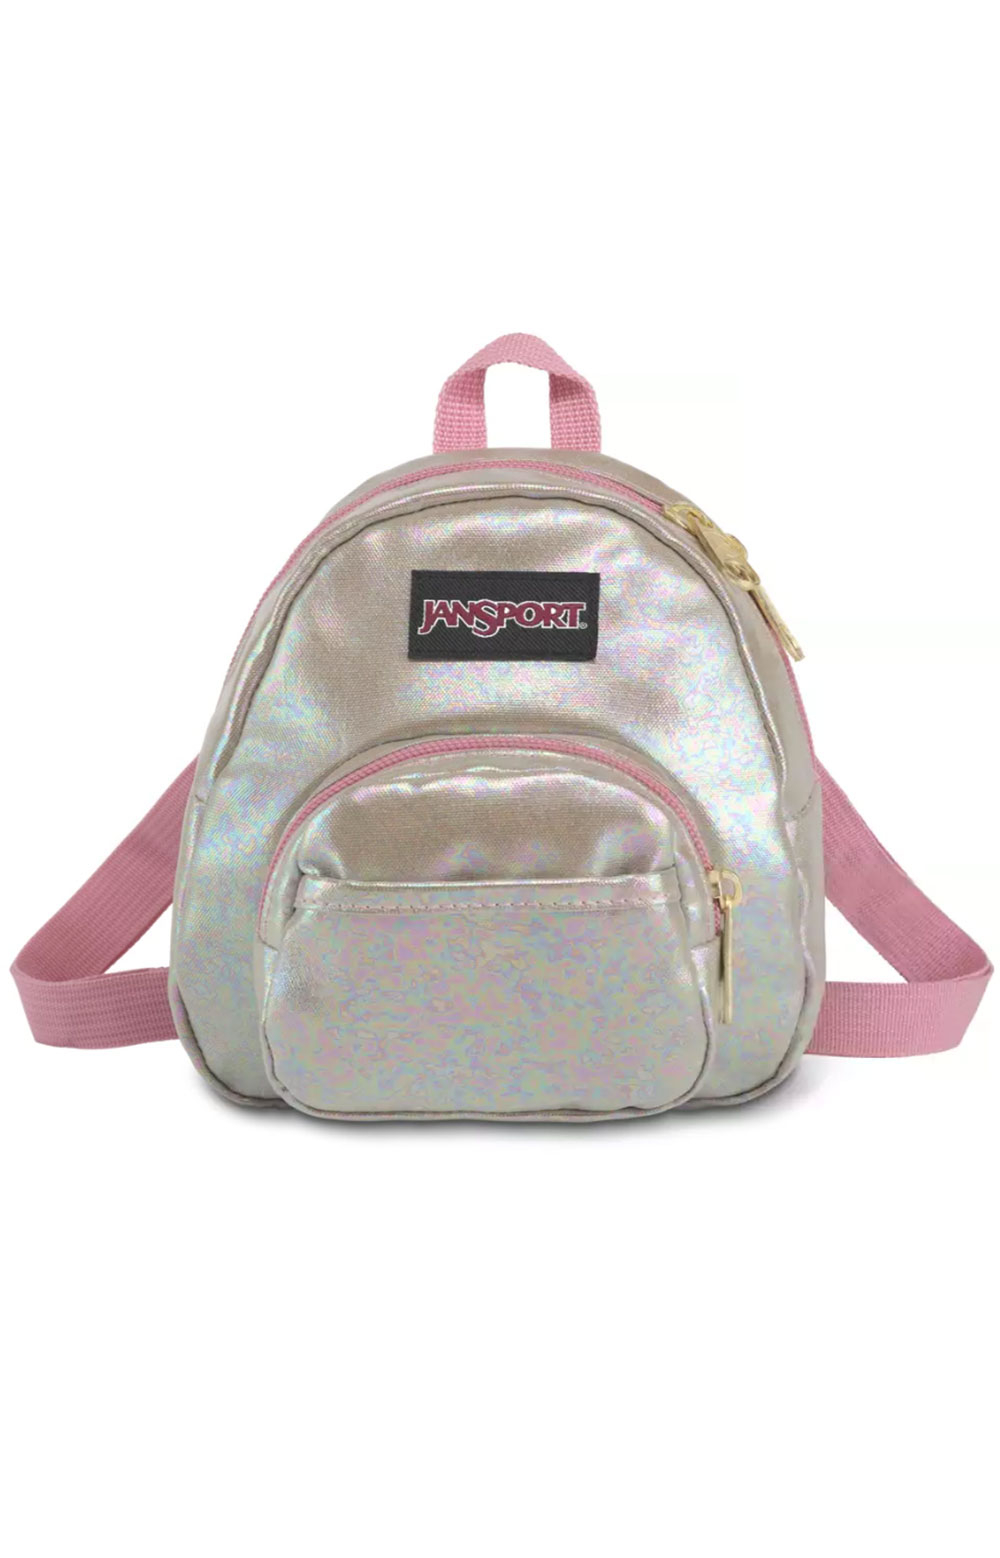 Quarter Pint FX Backpack - Pearlized Shine